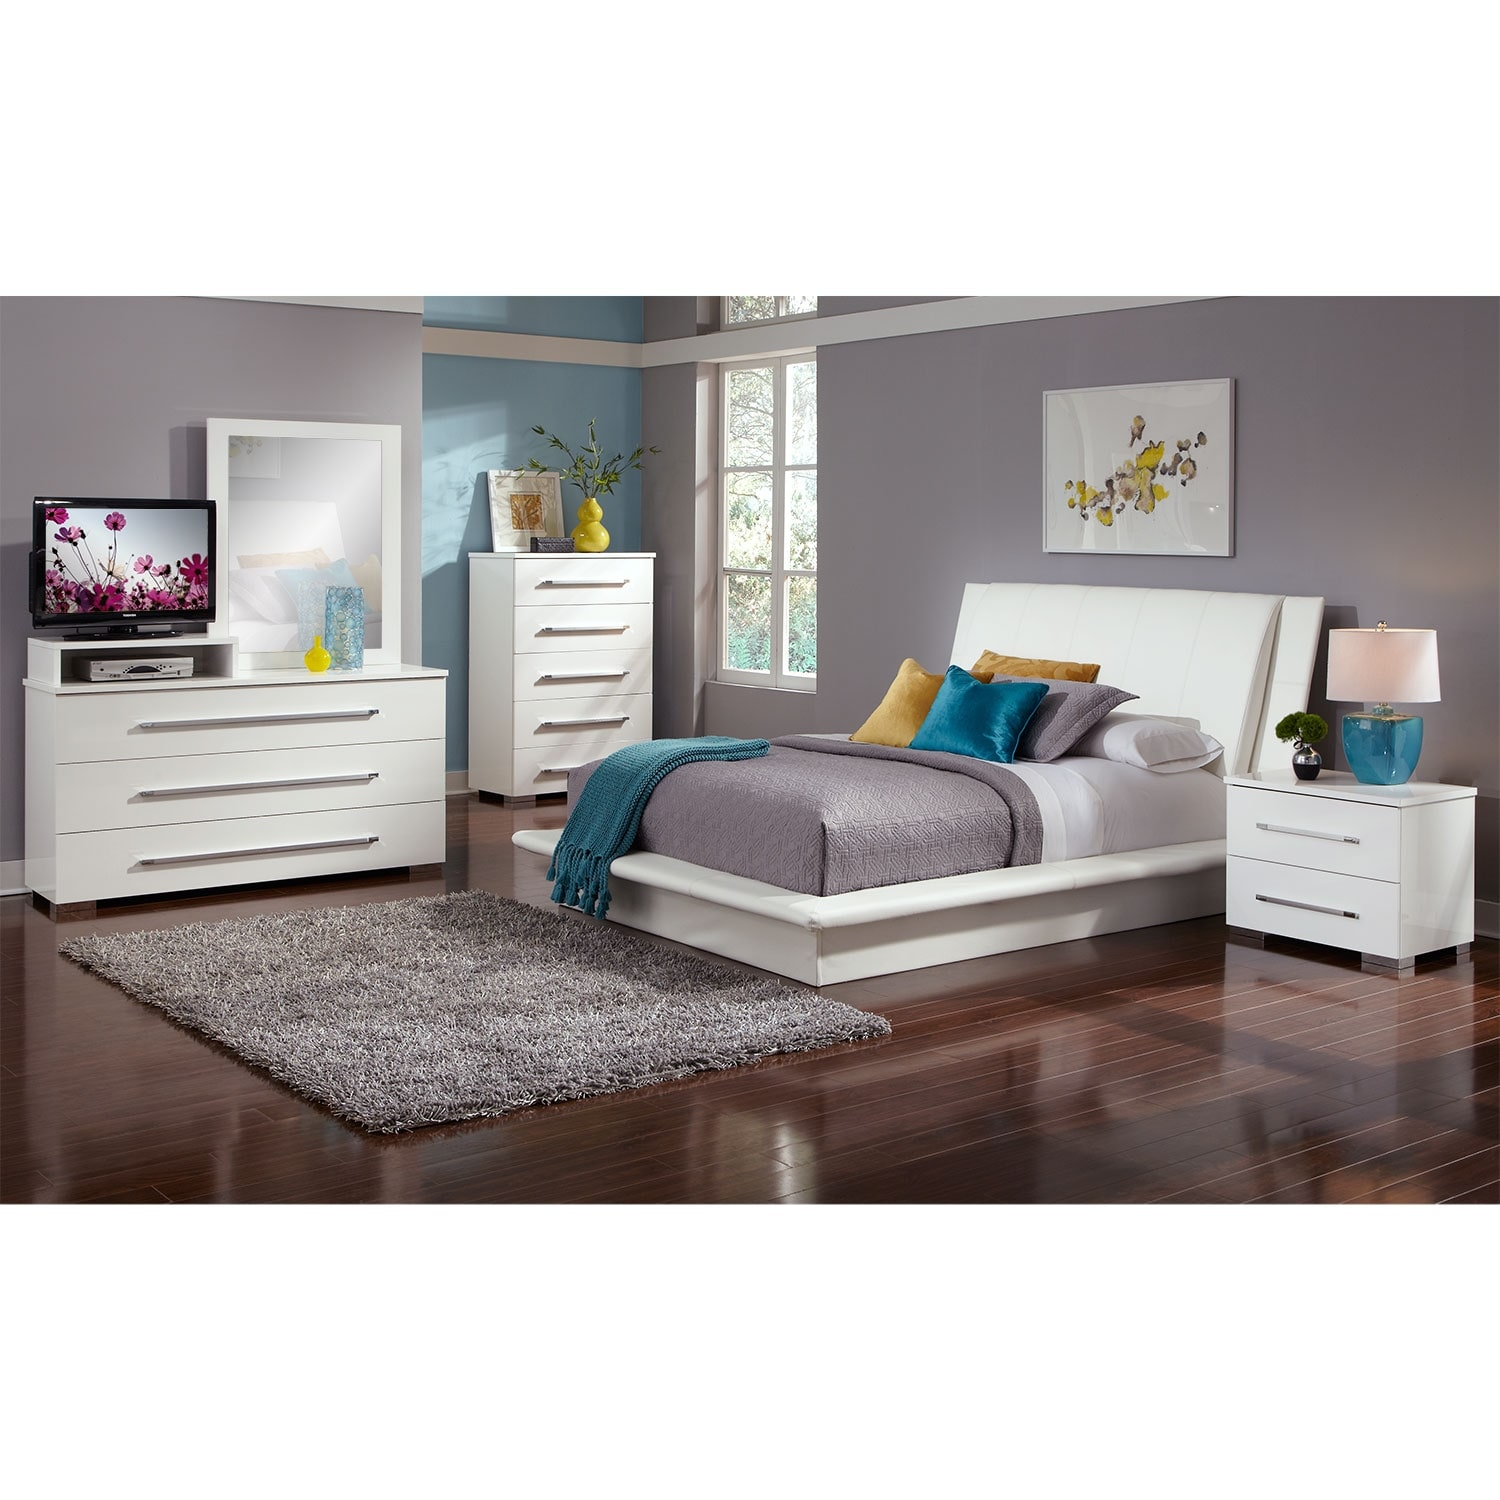 Dimora White 7 Pc. King Bedroom